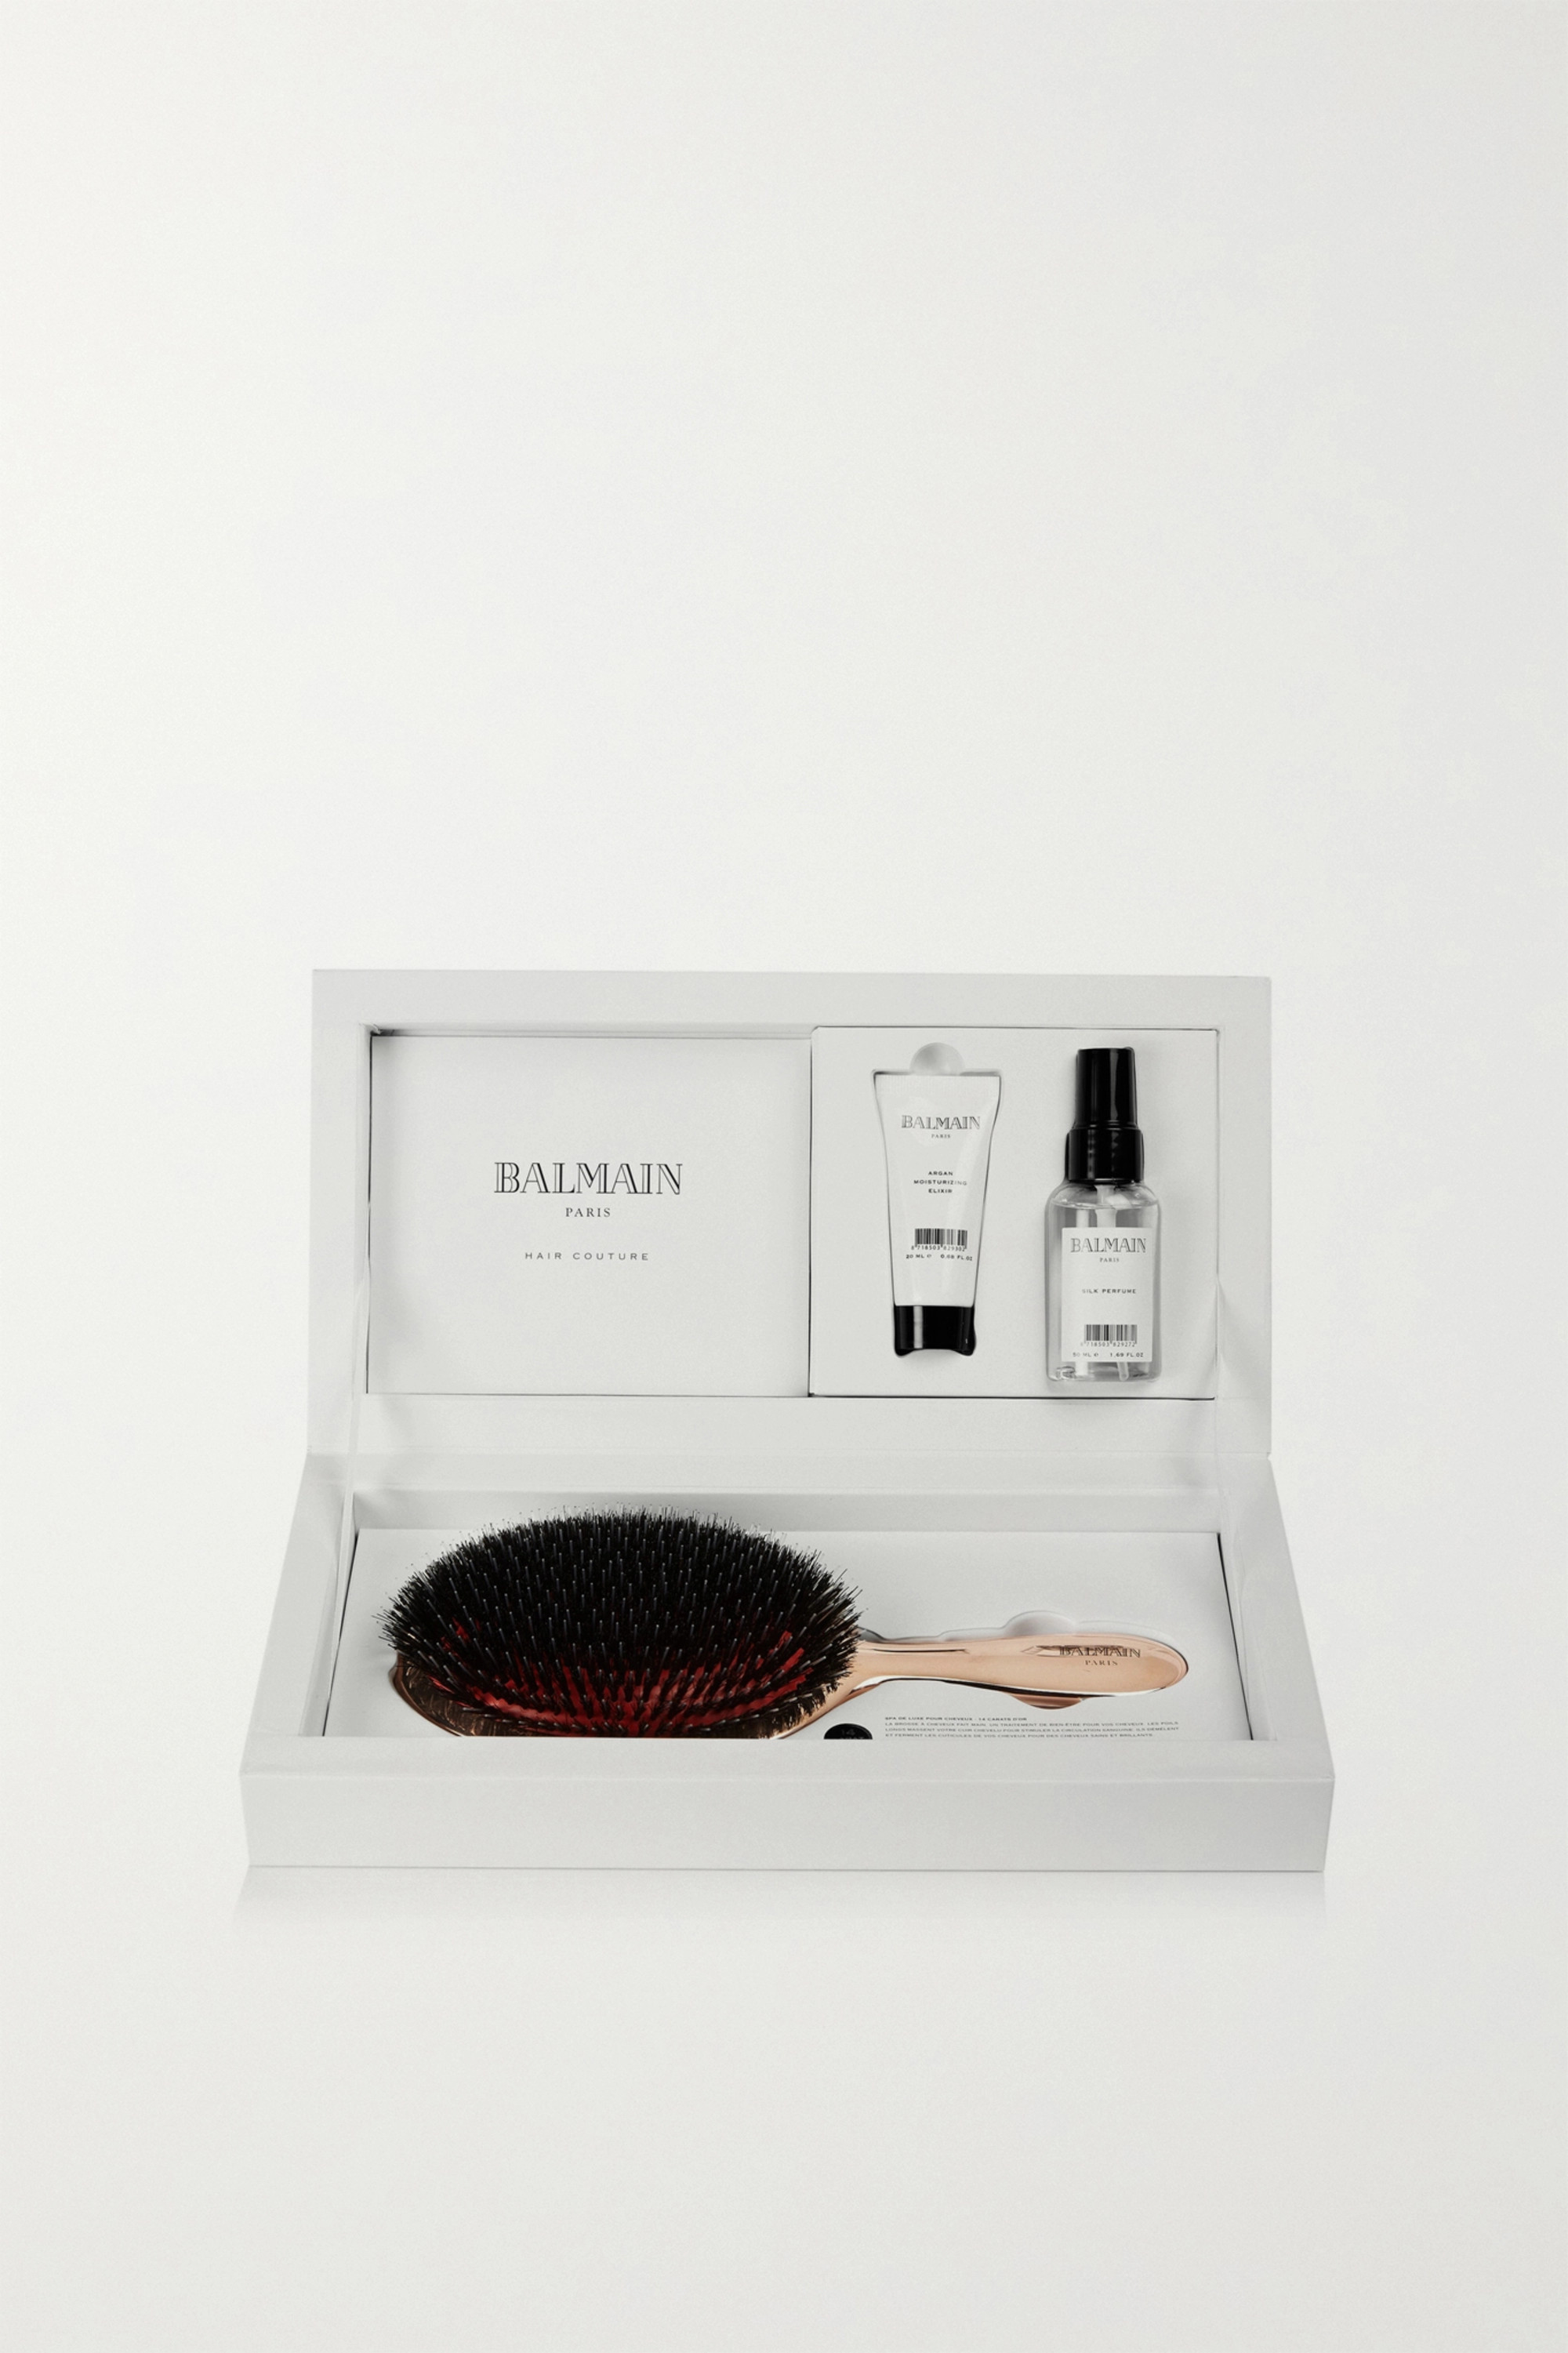 Balmain Paris Hair Couture Rose Gold-Plated Spa Brush Set